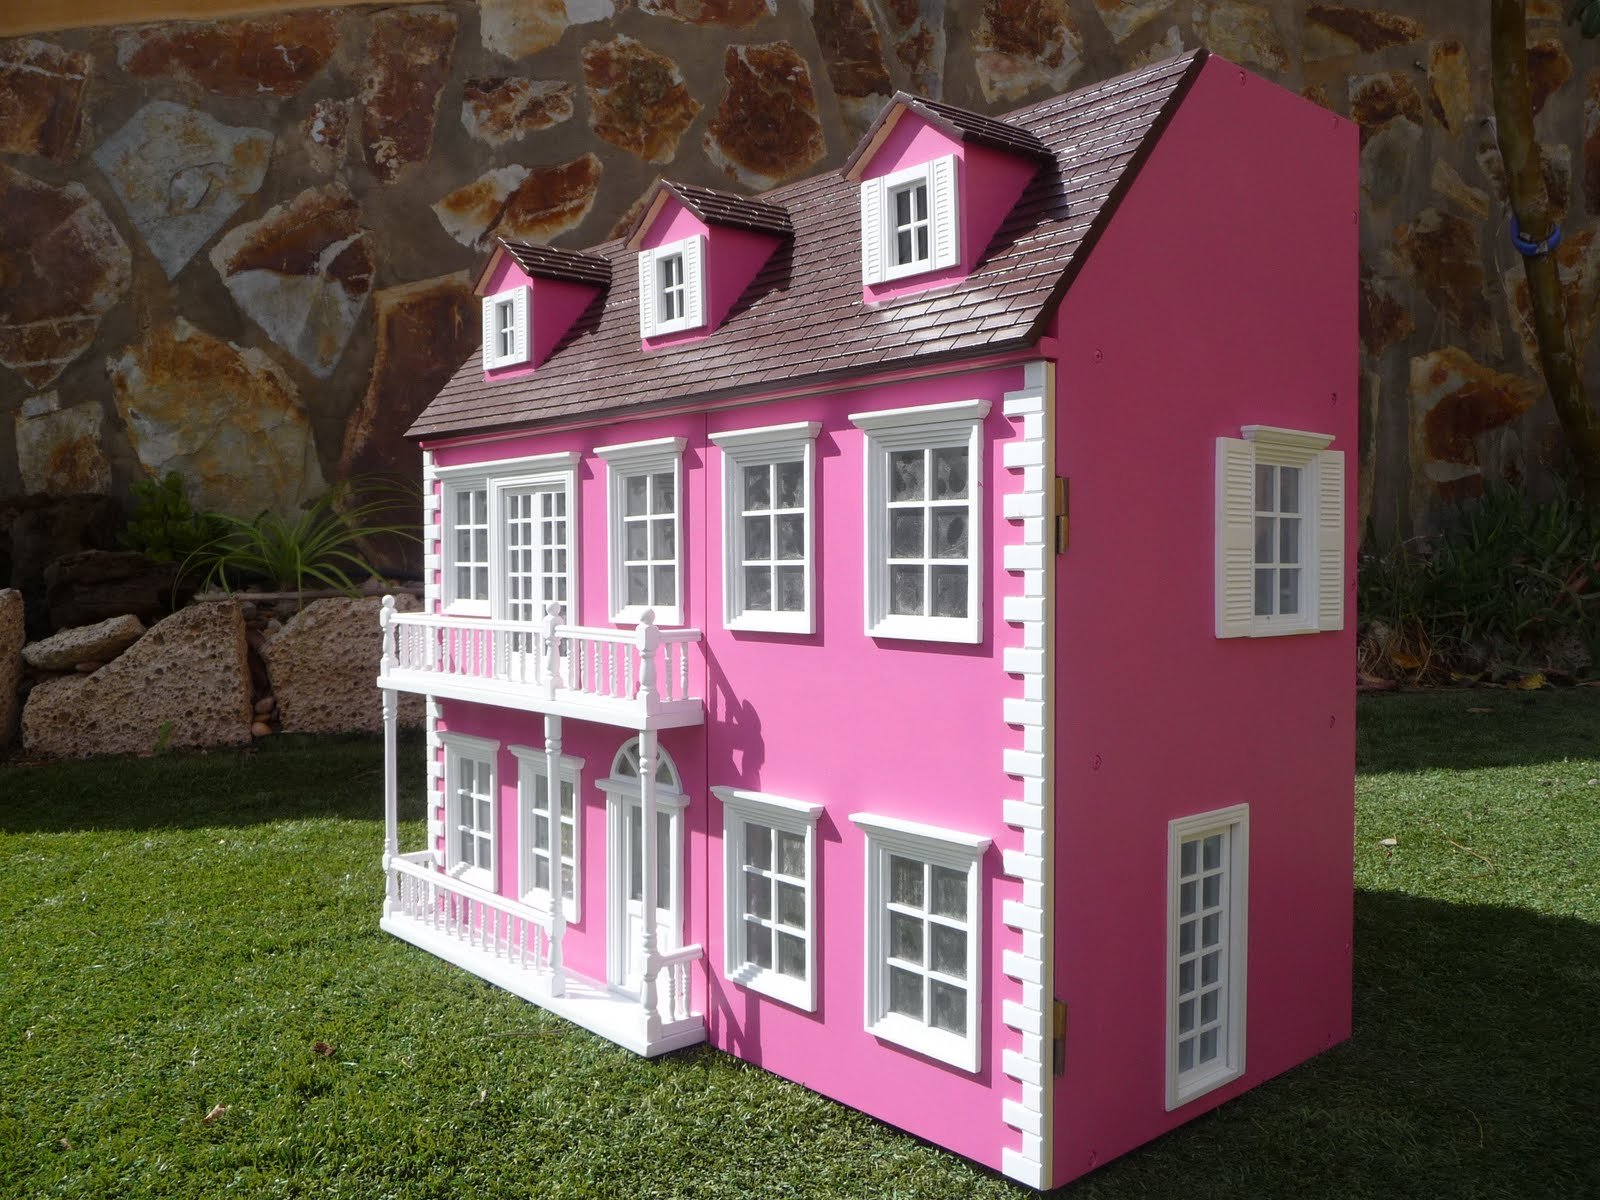 Pin casas de muecas barbie portal com pelautscom on pinterest - Casa de barbie ...